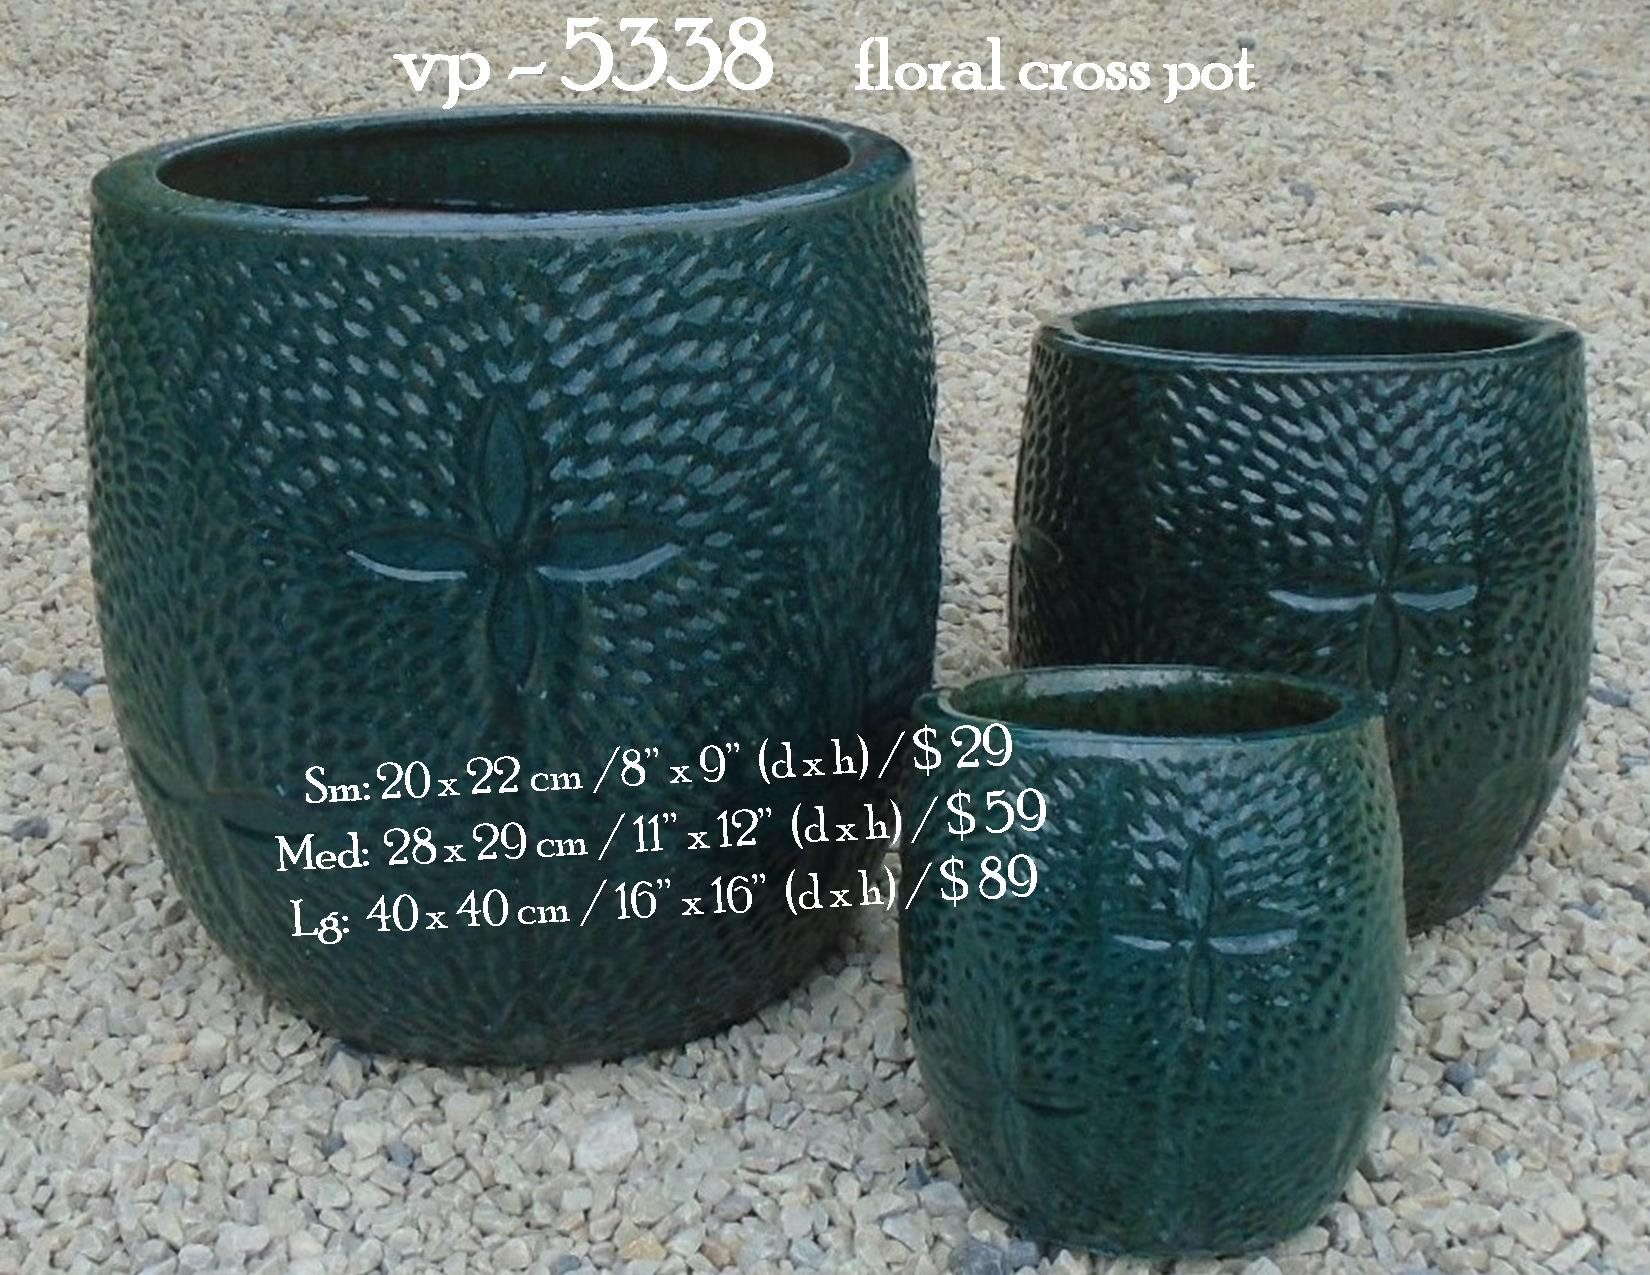 vp - 5338     floral cross pot